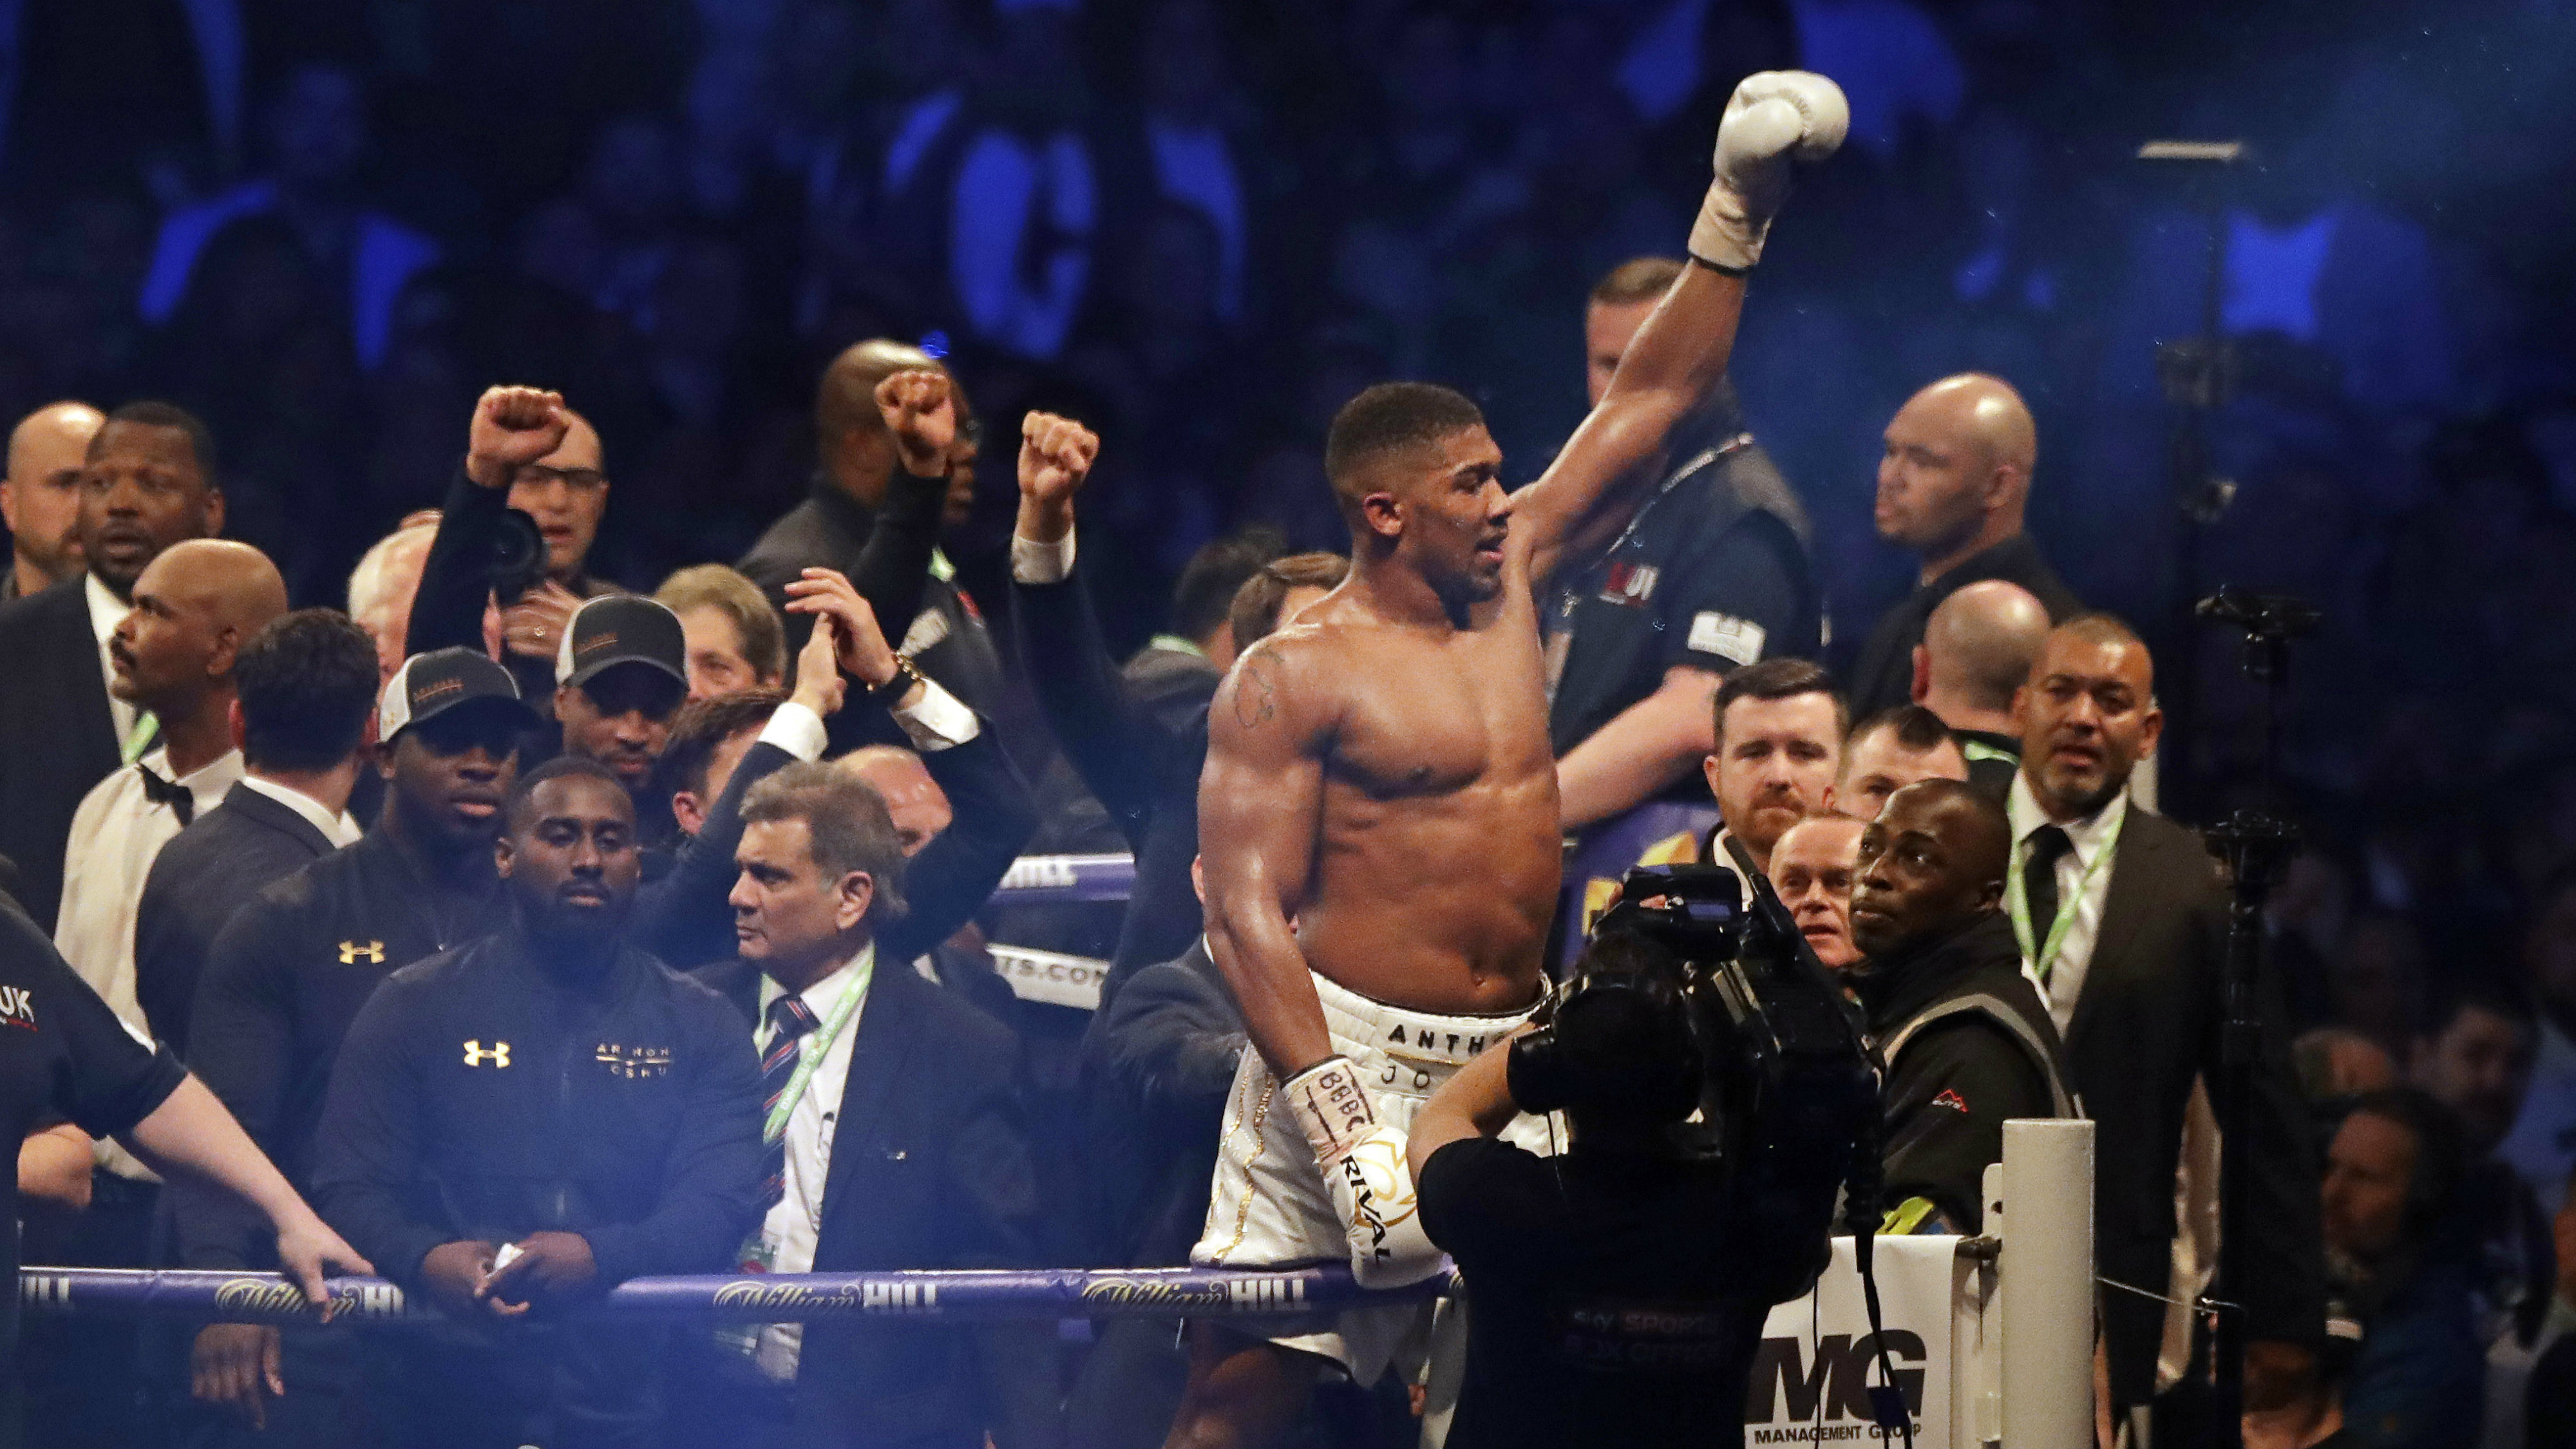 British boxer Anthony Joshua celebrates after beating Ukrainian boxer Wladimir Klitschko in a fight for Joshua's IBF and the vacant WBA Super World and IBO heavyweight titles at Wembley stadium in London, Saturday, April 29, 2017. Joshua won with an 11th round stoppage.